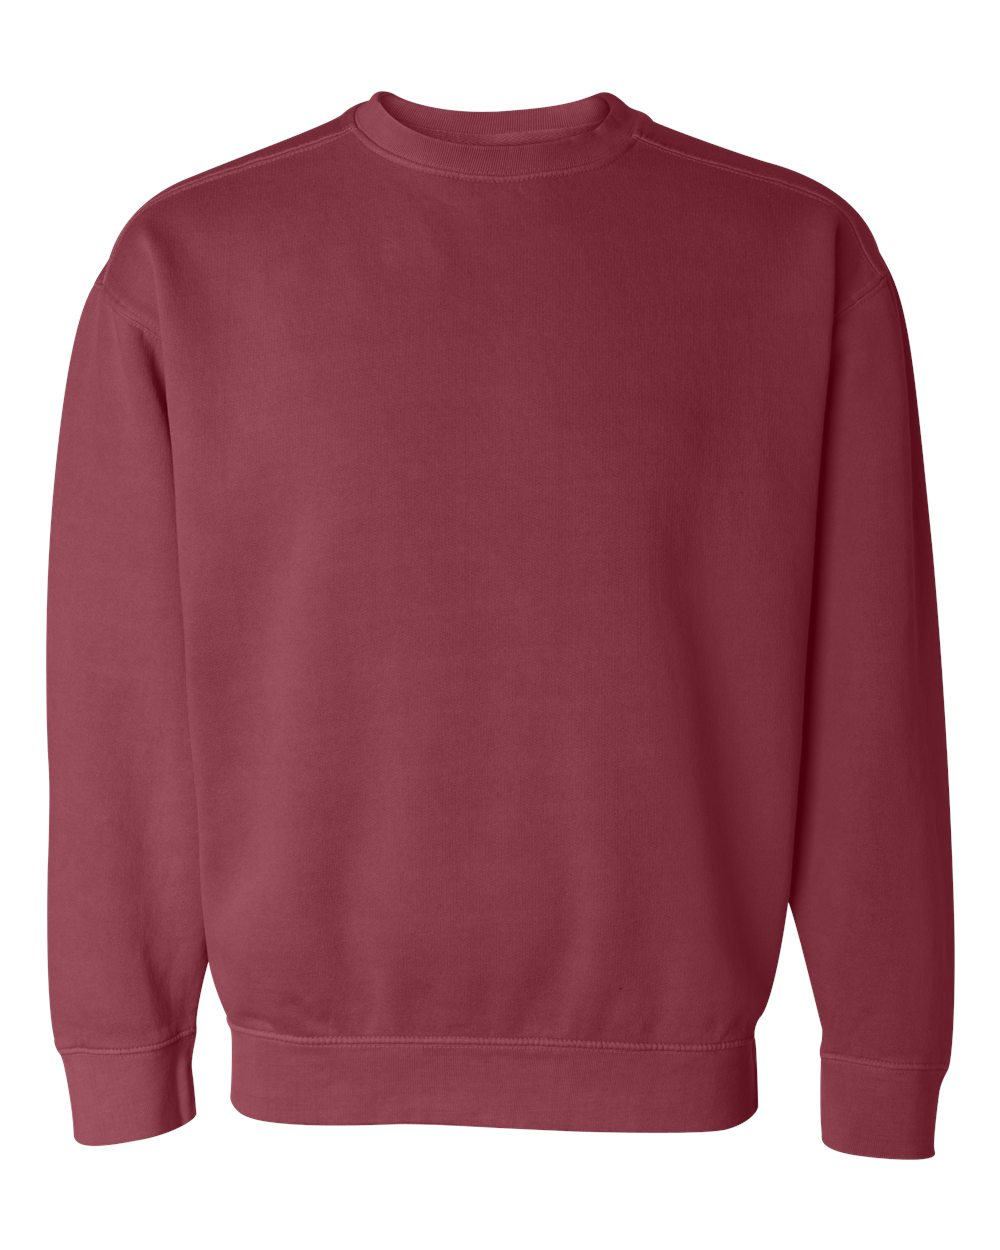 Comfort-Colors-Mens-Garment-Dyed-Ringspun-Crewneck-Sweatshirt-1566-up-to-3XL miniature 24